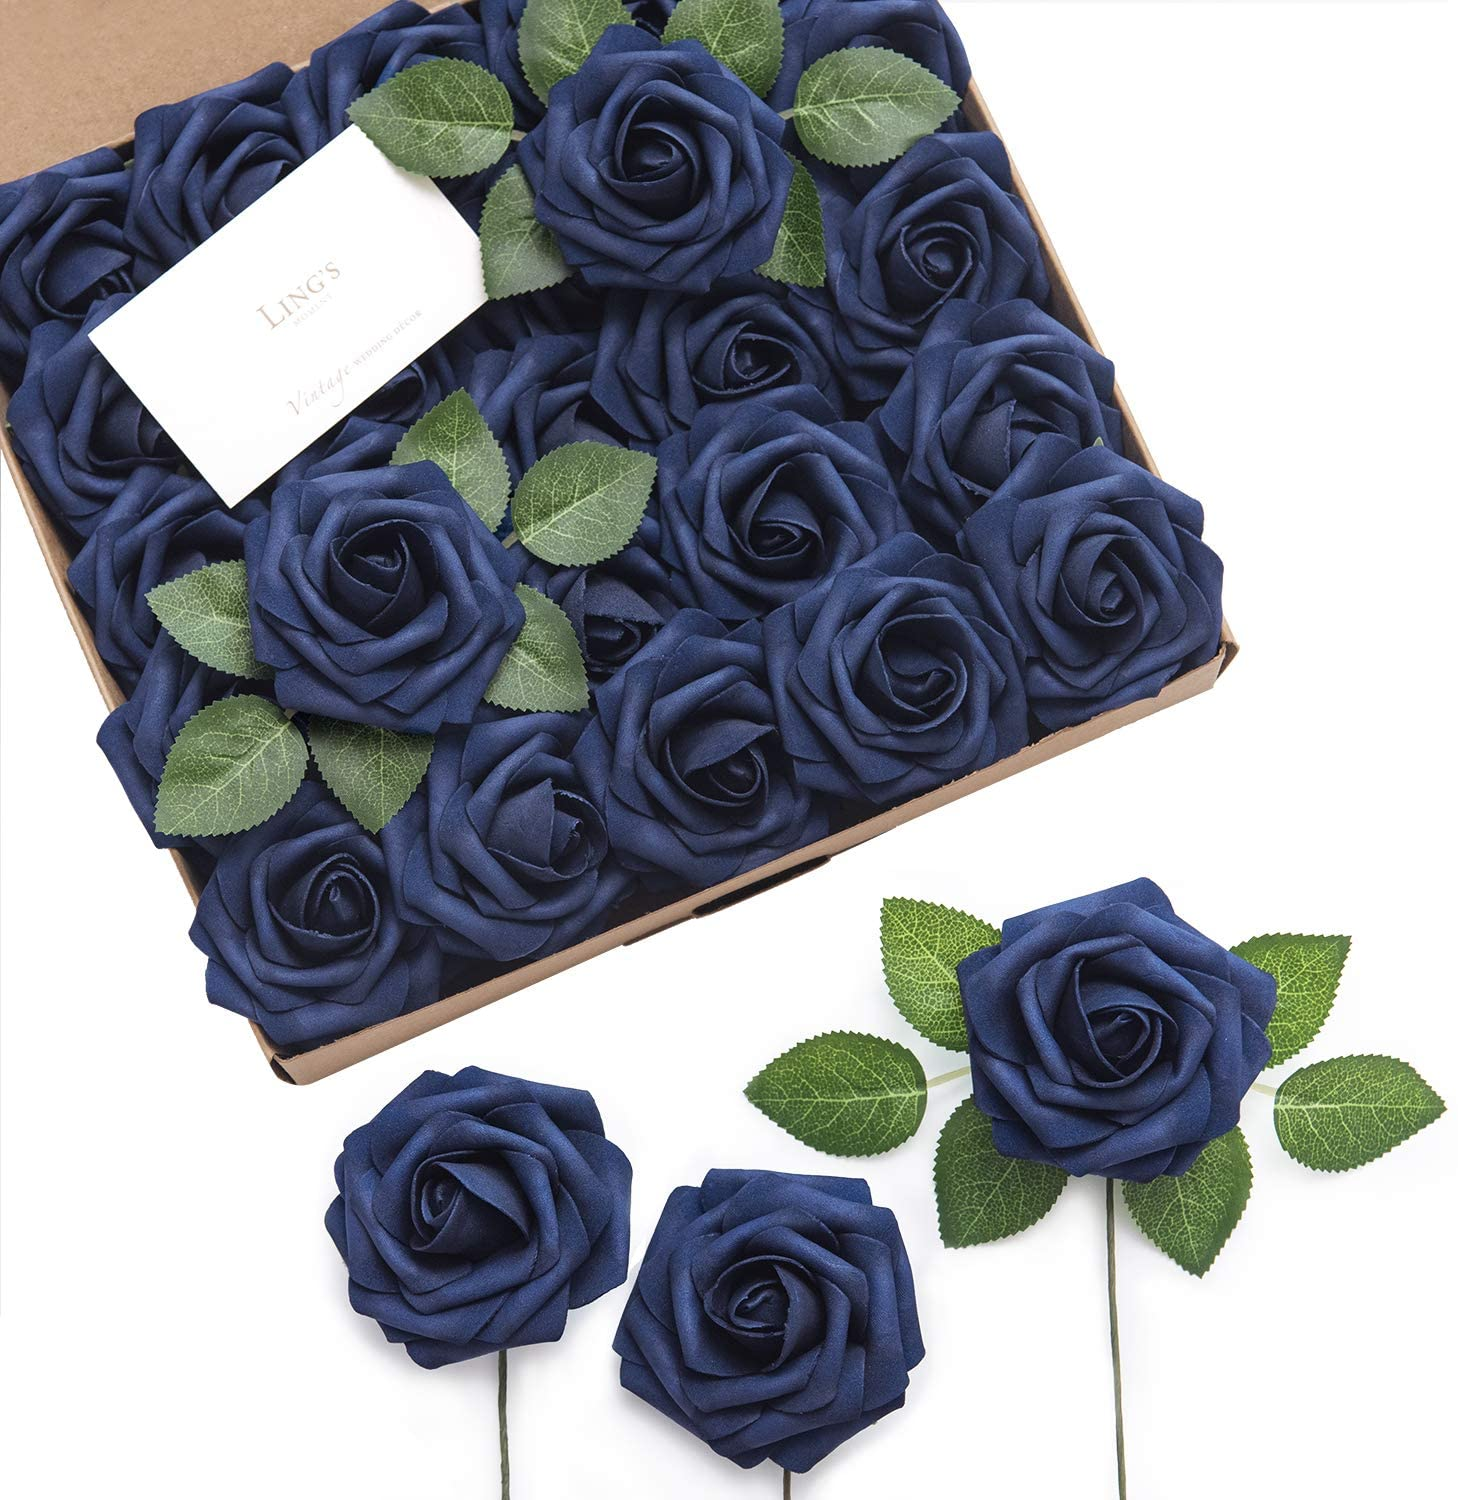 "Ling's moment Rose Artificial Flowers 25pcs Realistic Fake Roses w/Stem for DIY Wedding Bouquets Centerpieces Bridal Shower Party Home Decorations (Navy Blue, 25pcs Regular 3"")"